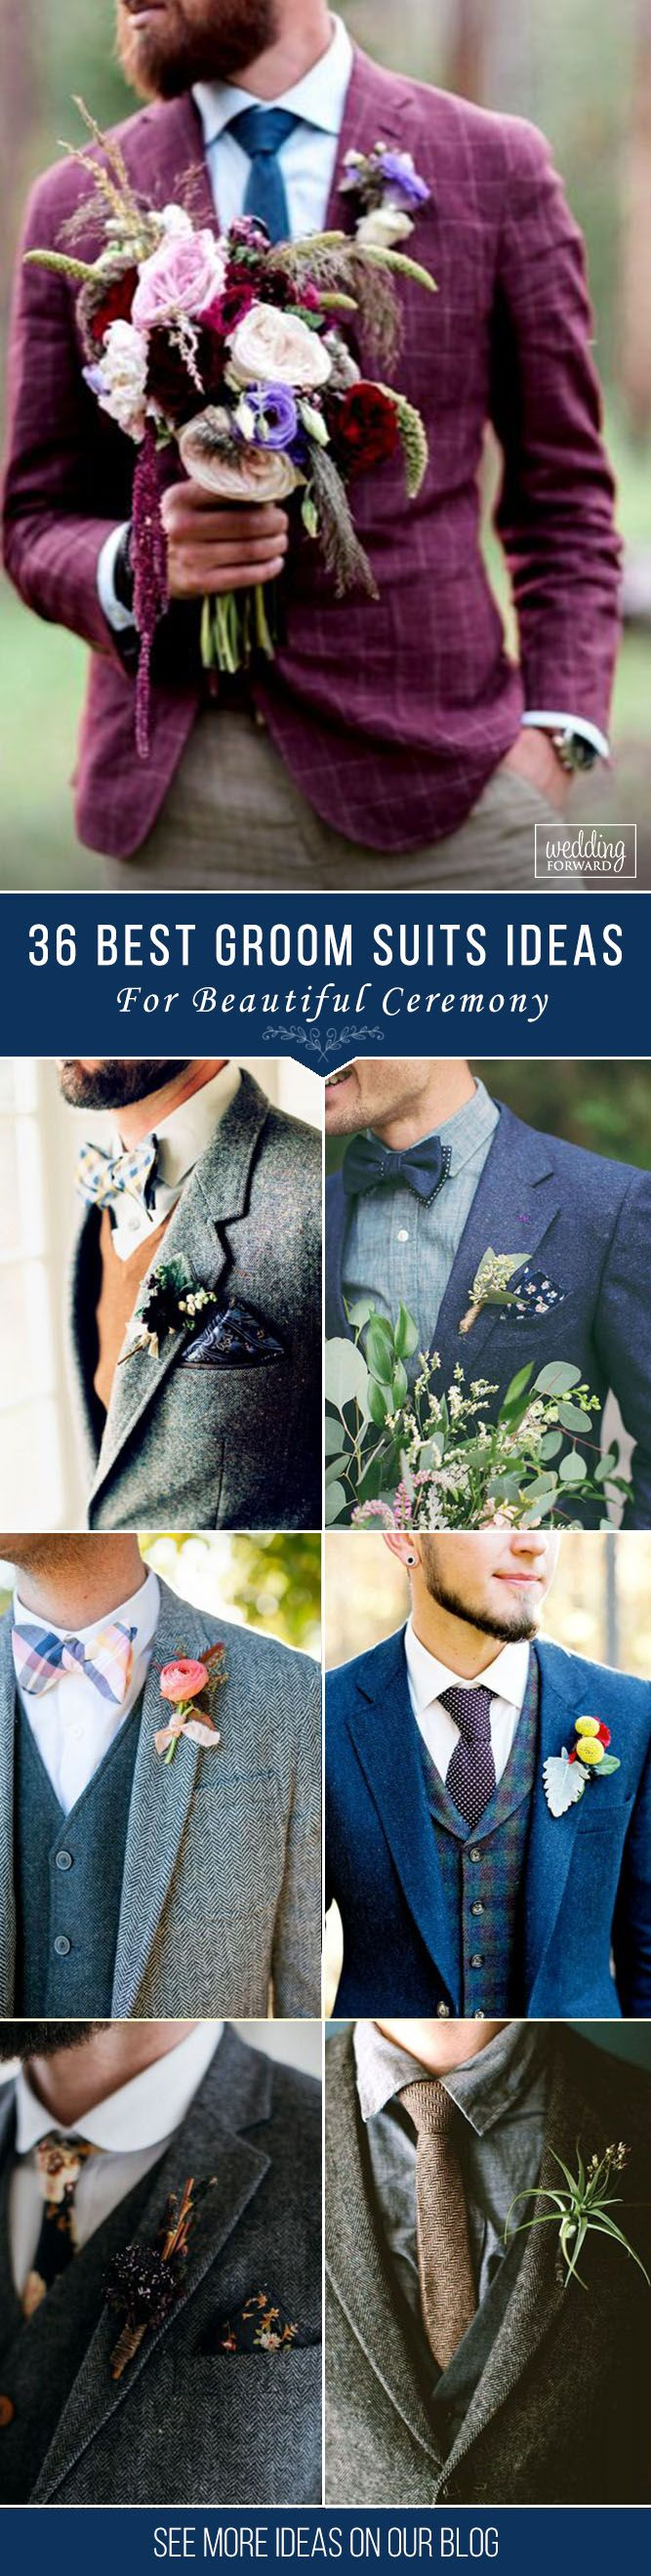 36 The Most Popular Groom Suits ❤ And the choice of groom suits becomes one of the most important events.The perfect suit well fits a groom and suits him, reflects his personality. See more: http://www.weddingforward.com/groom-suits/ ‎#groom #groomsmen